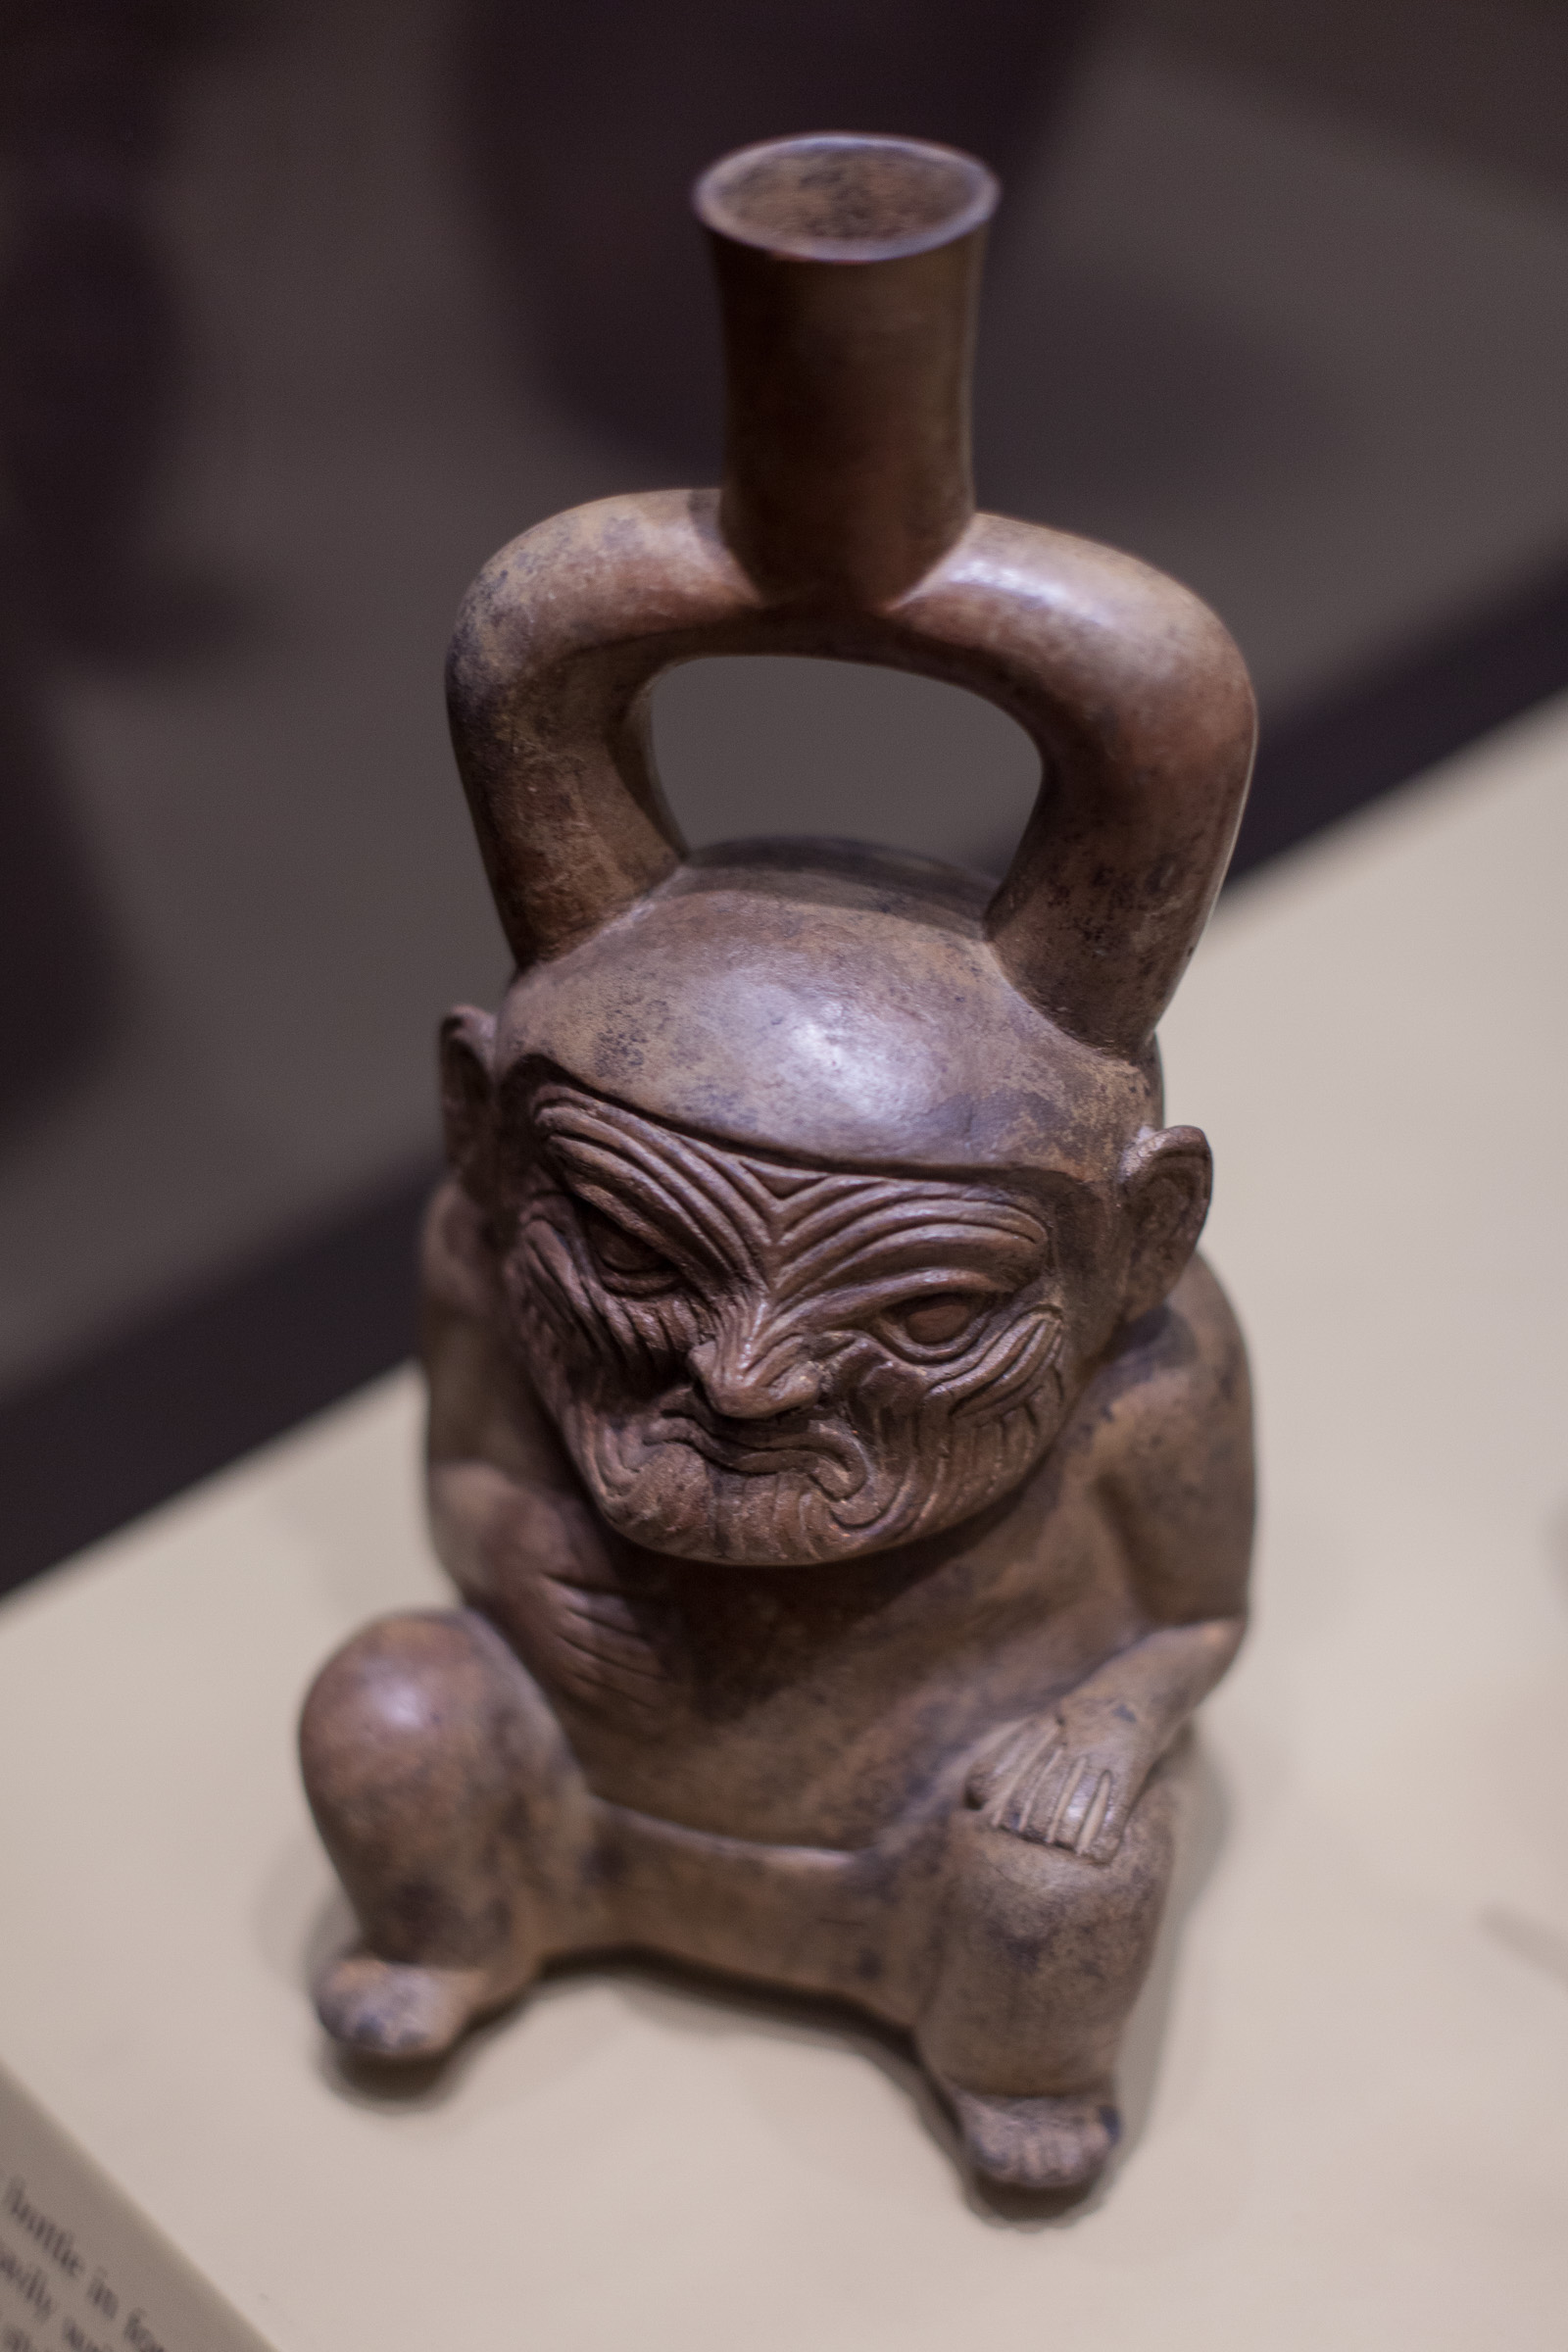 Mesoamerican figurine in New York's American Museum of Natural History